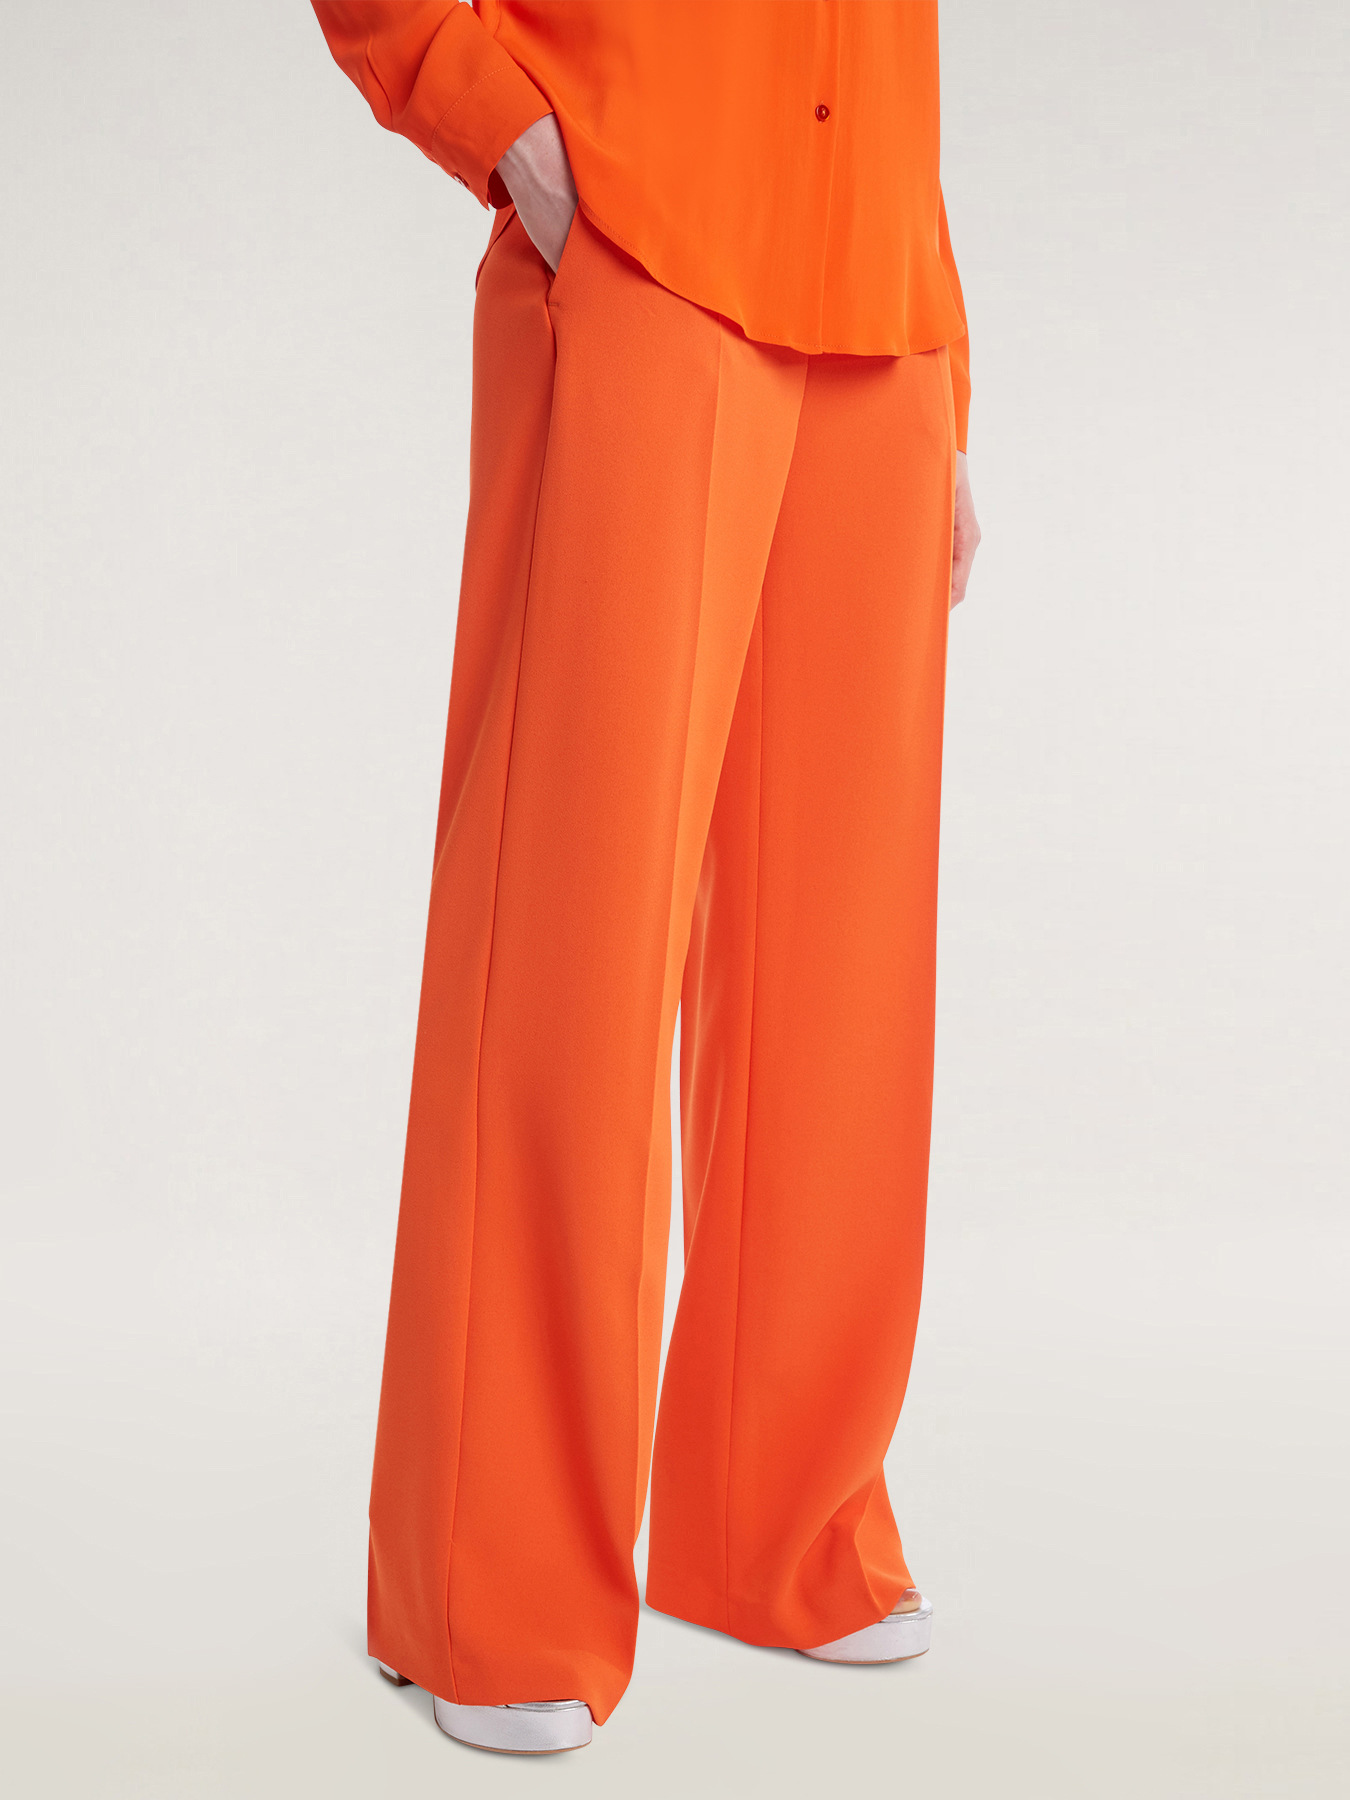 CARACTÈRE   Trousers   P238A000751N017